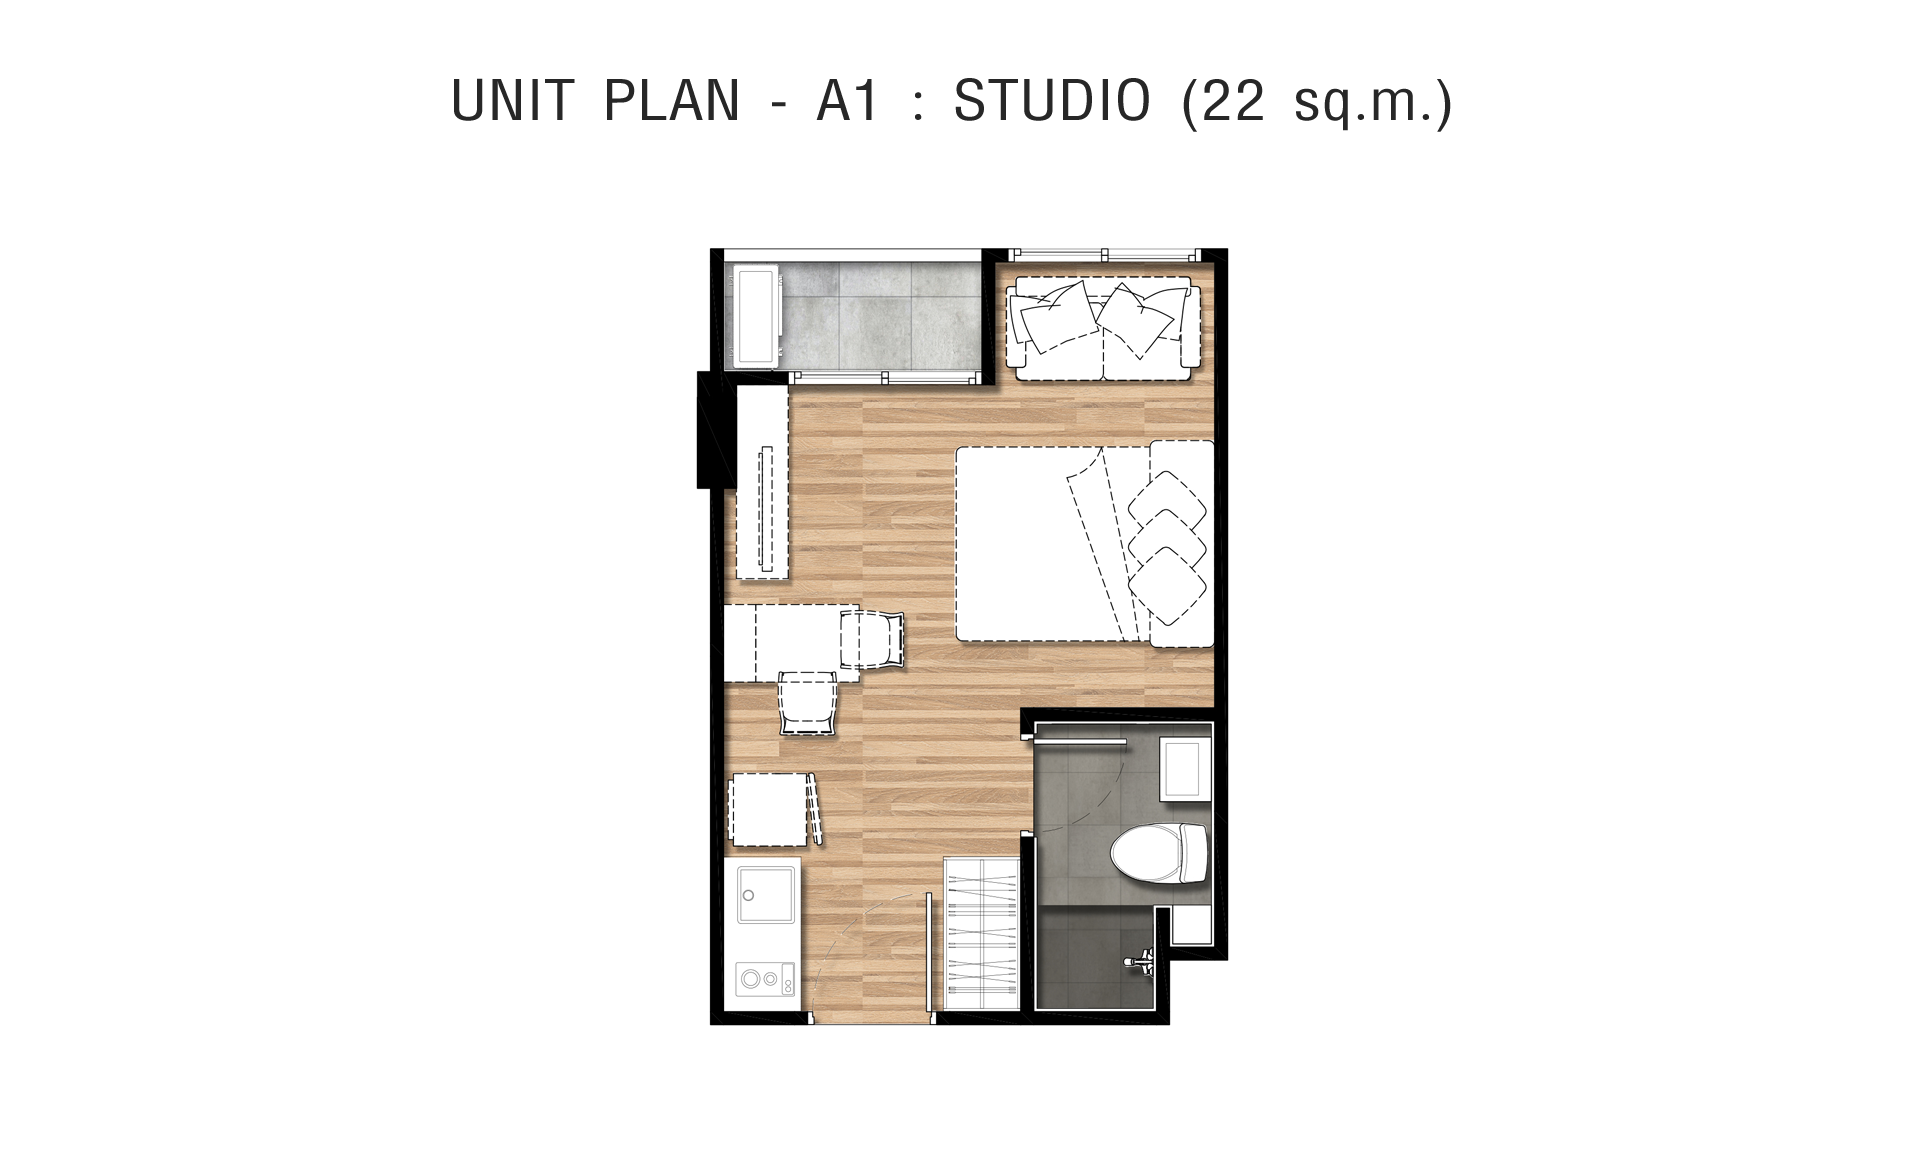 UNIT PLAN - TYPE A1